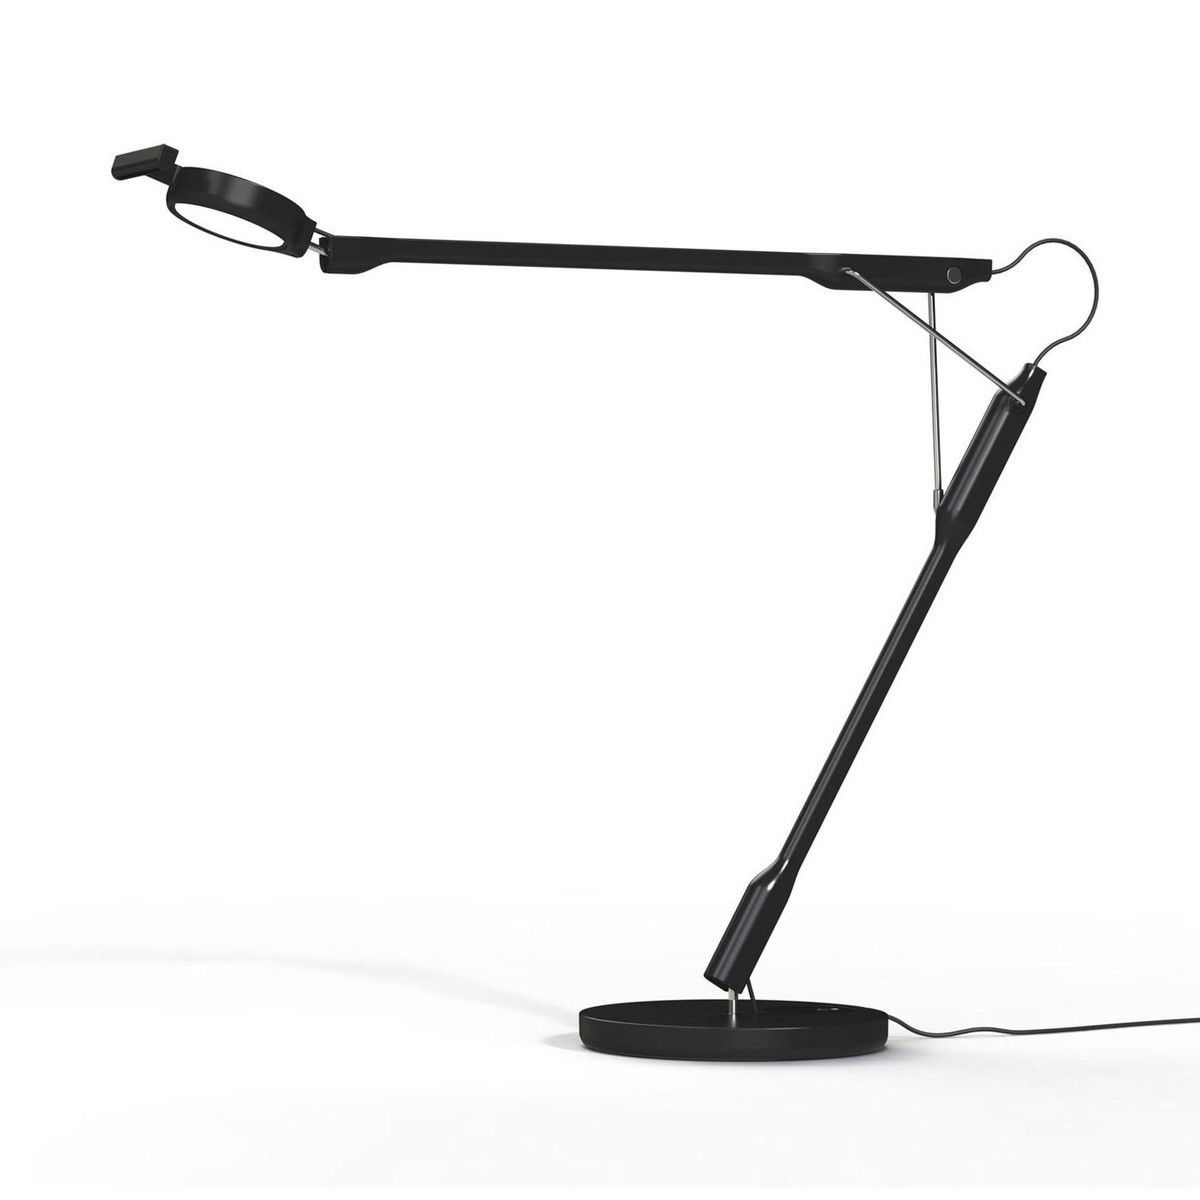 tivedo led lampe de bureau avec capteur luceplan. Black Bedroom Furniture Sets. Home Design Ideas